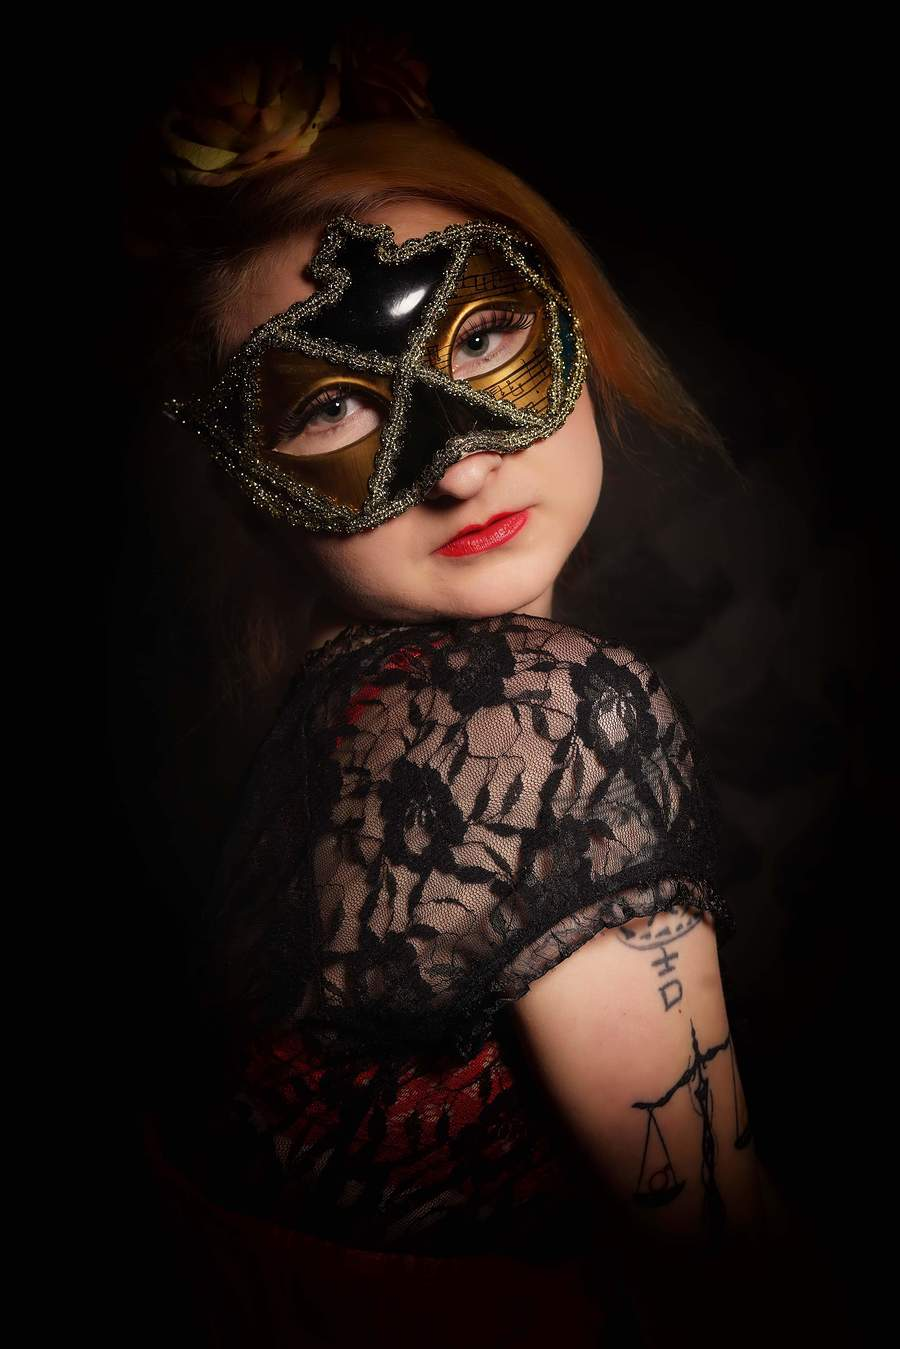 What lies behind the mask? / Photography by Petrol Junkies, Model Scarlet Phoenixx, Makeup by Zoe H (MUA), Taken at PGD Modelling and Photography Studios / Uploaded 19th July 2019 @ 11:55 AM